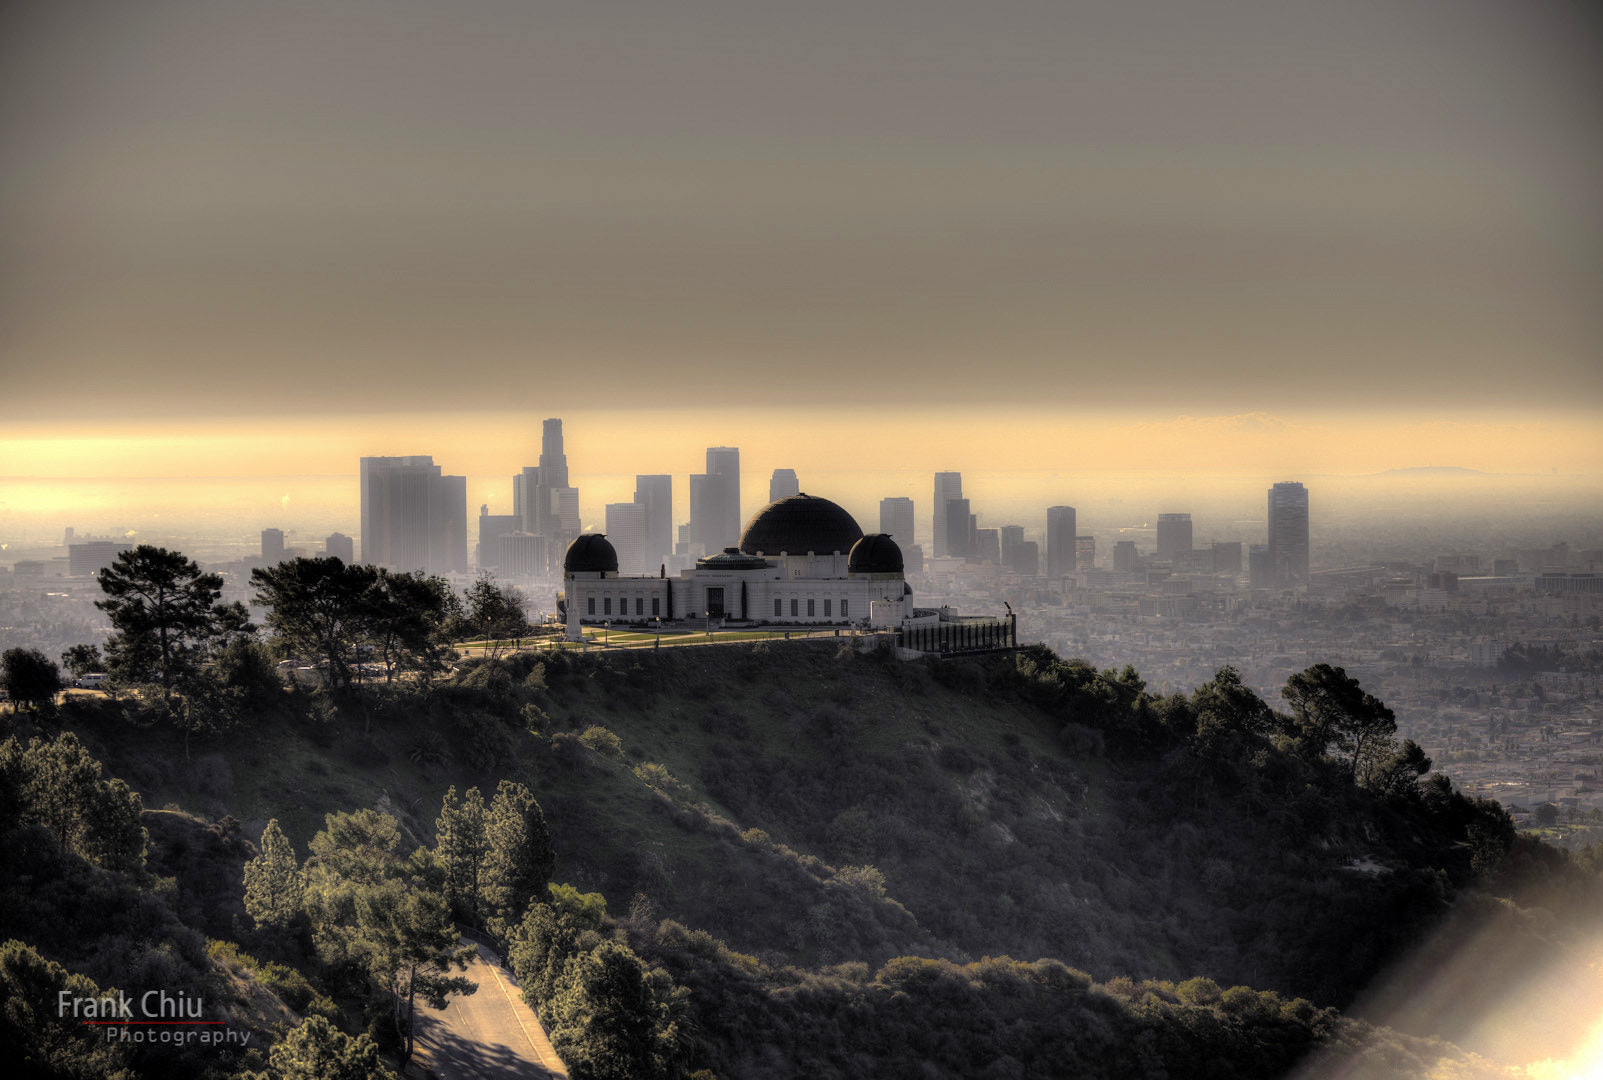 Photograph Griffith Observatory by Frank Chiu on 500px